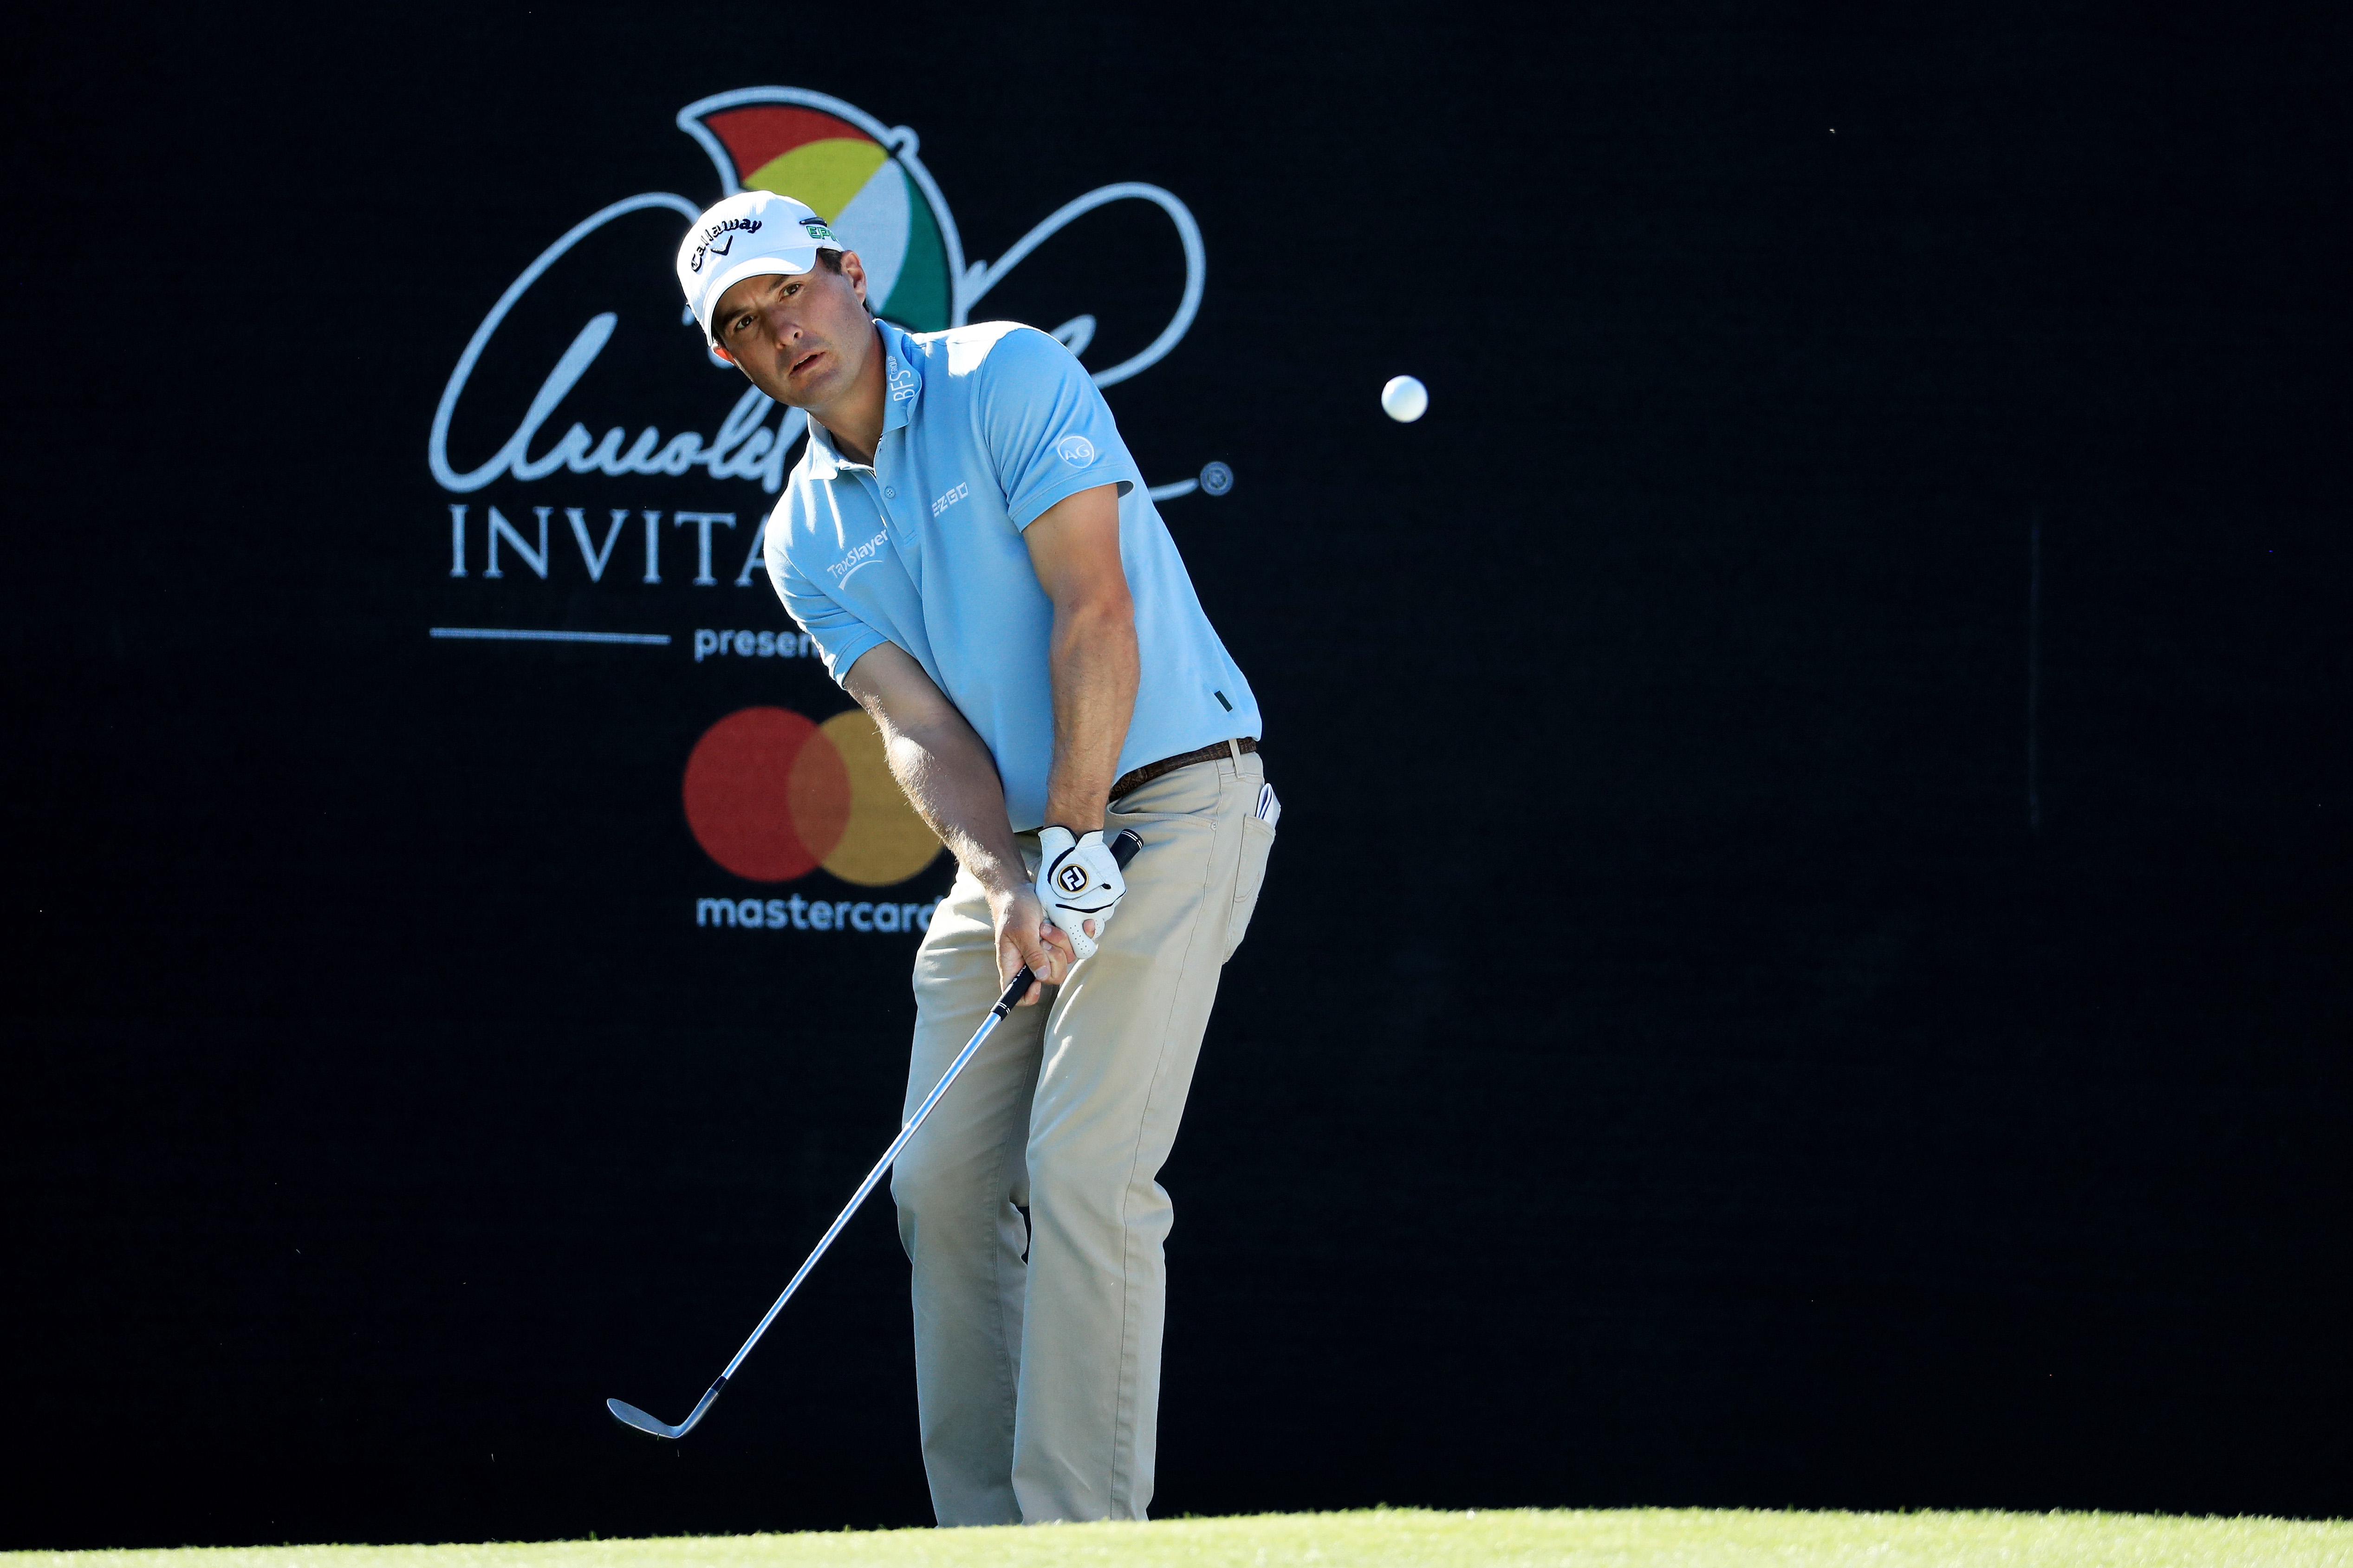 Kevin Kisner came up short at the Arnold Palmer Invitational, but will be riding weeks of good form into the WGC-Dell Match Play.